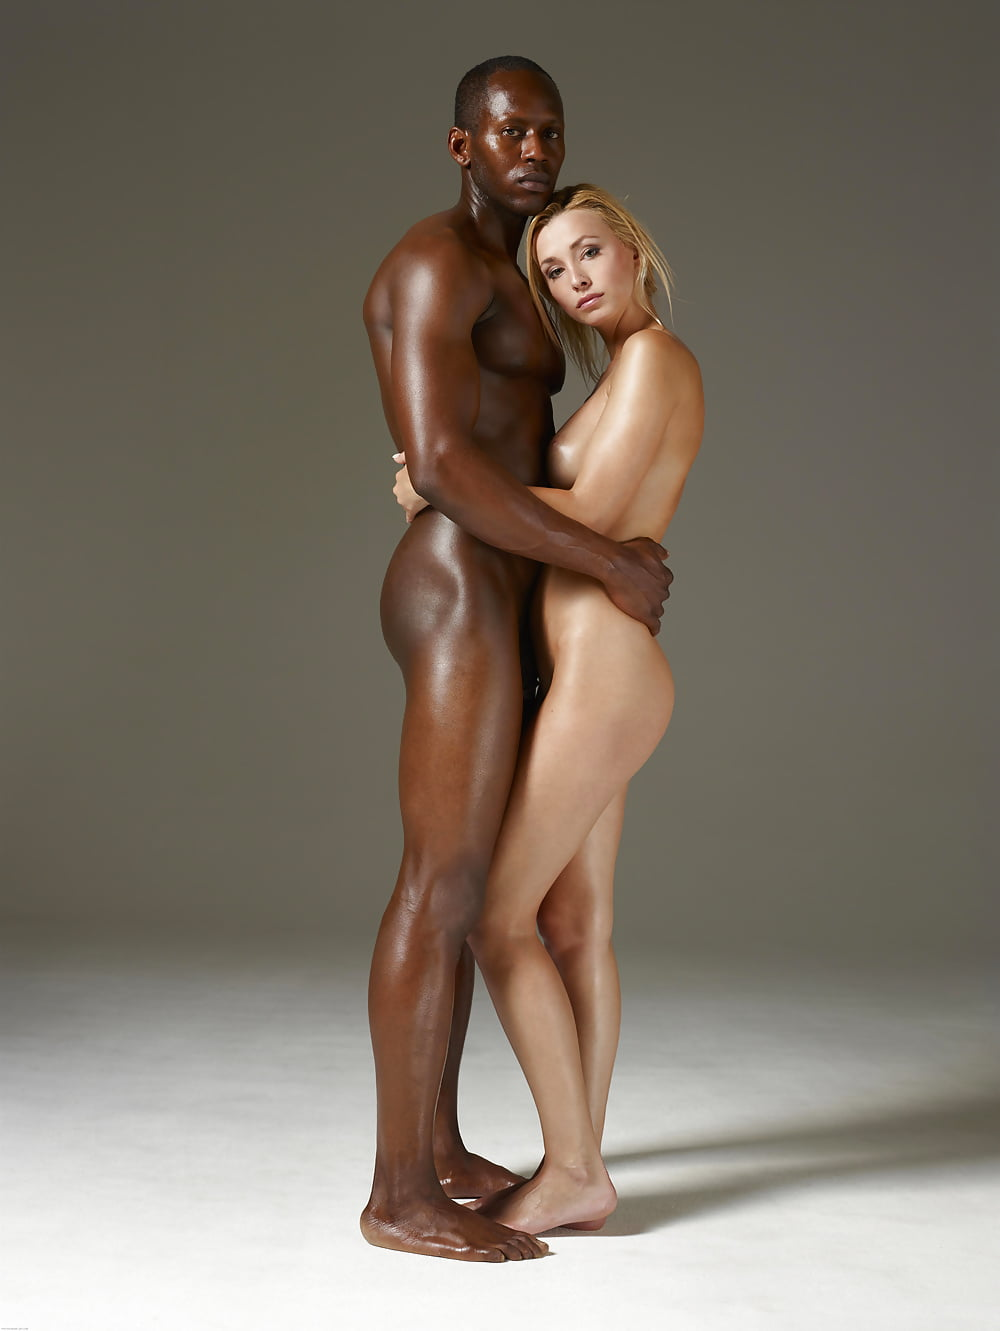 Hot girl with black man nude — 3